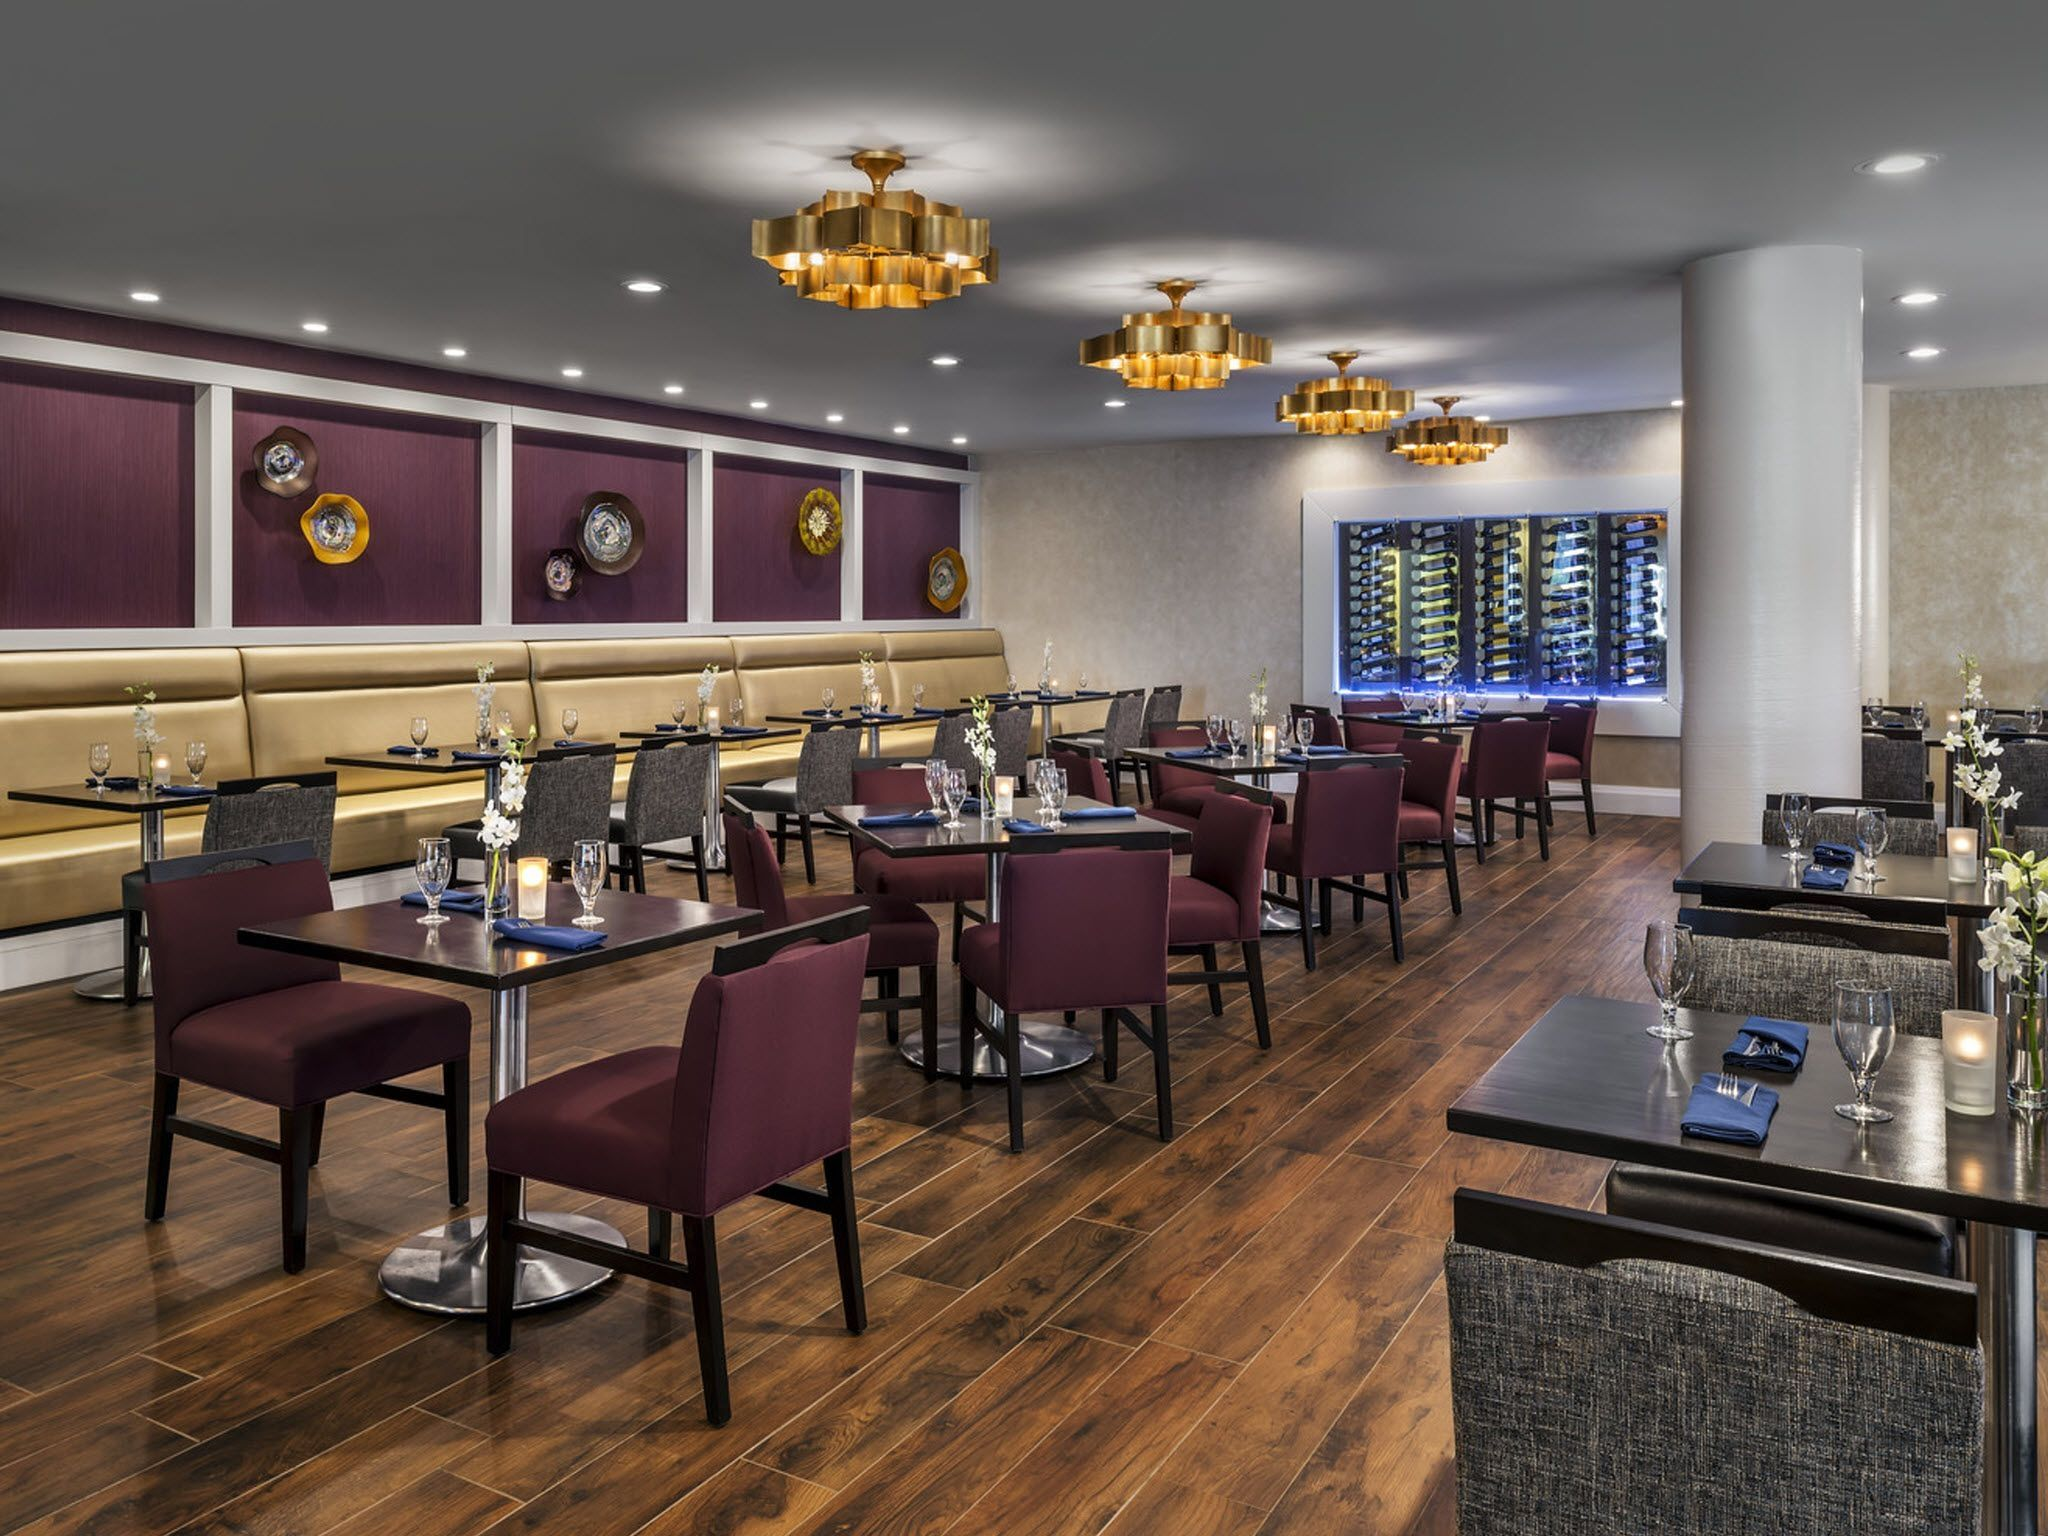 Restaurants near Toronto Airport - Crosswinds Restaurant and Bar